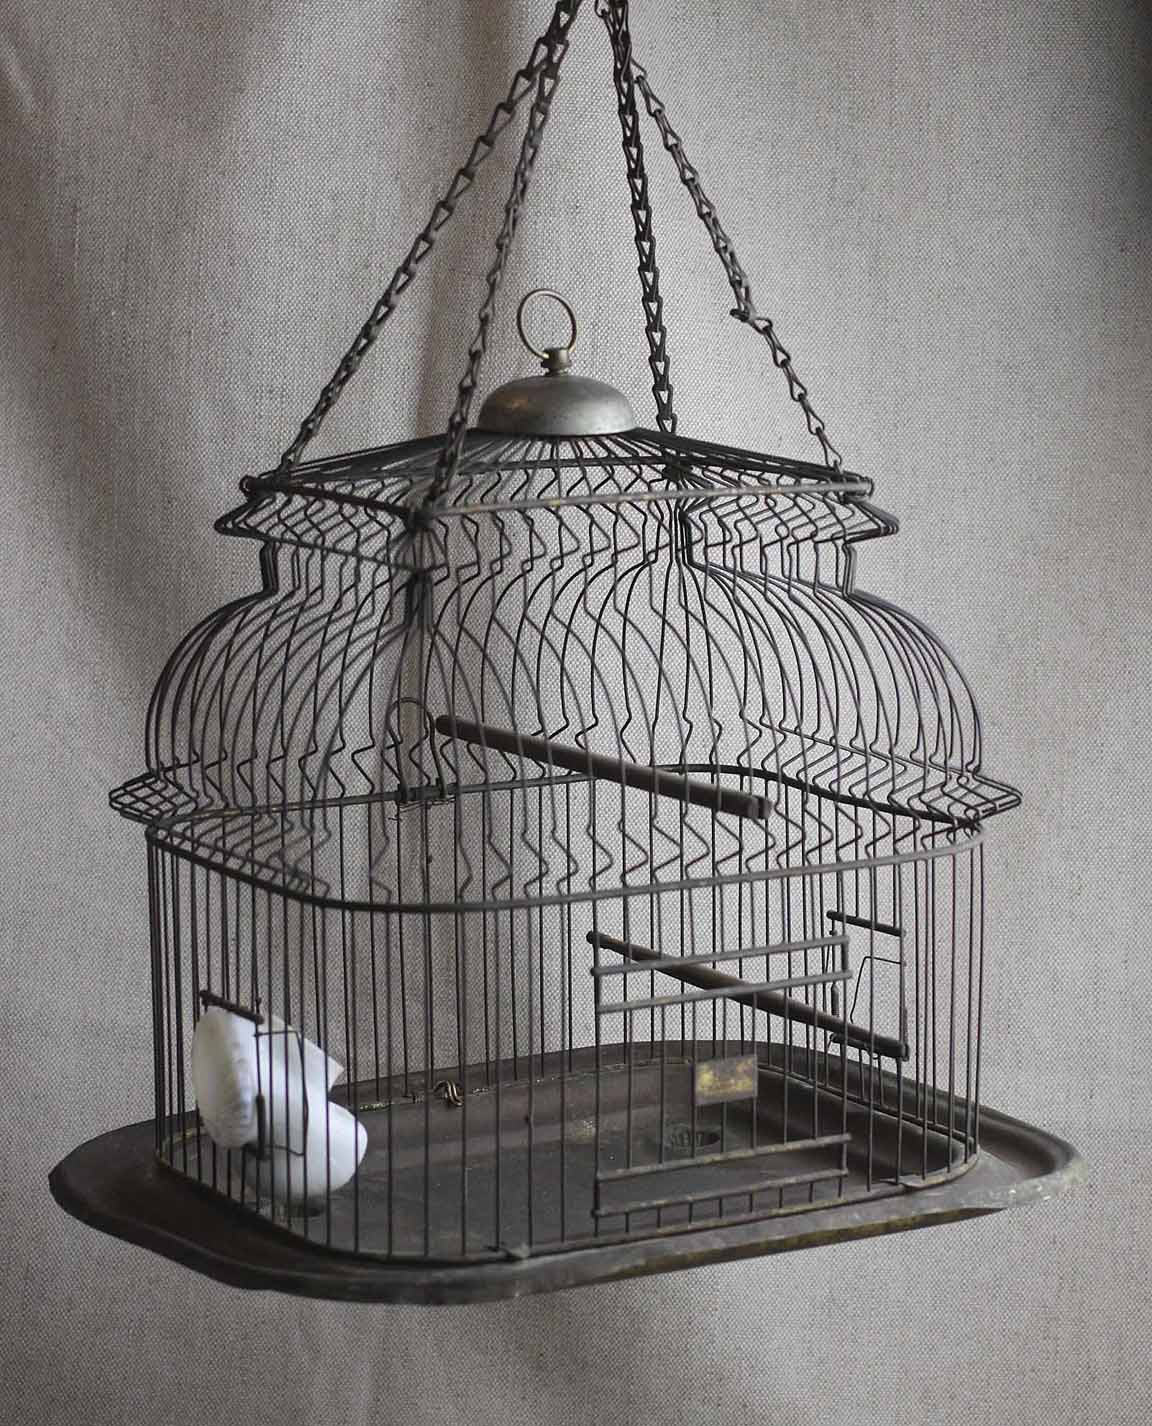 Bliss Farm Antiques Antique Bird Cage. Rustic Wine Racks. Modern Alarm Clock. Exterior Barn Doors. 3 Way Mirror. Brown Kitchen Backsplash. Limestone Countertops. Screened Porch. Industrial Dining Table